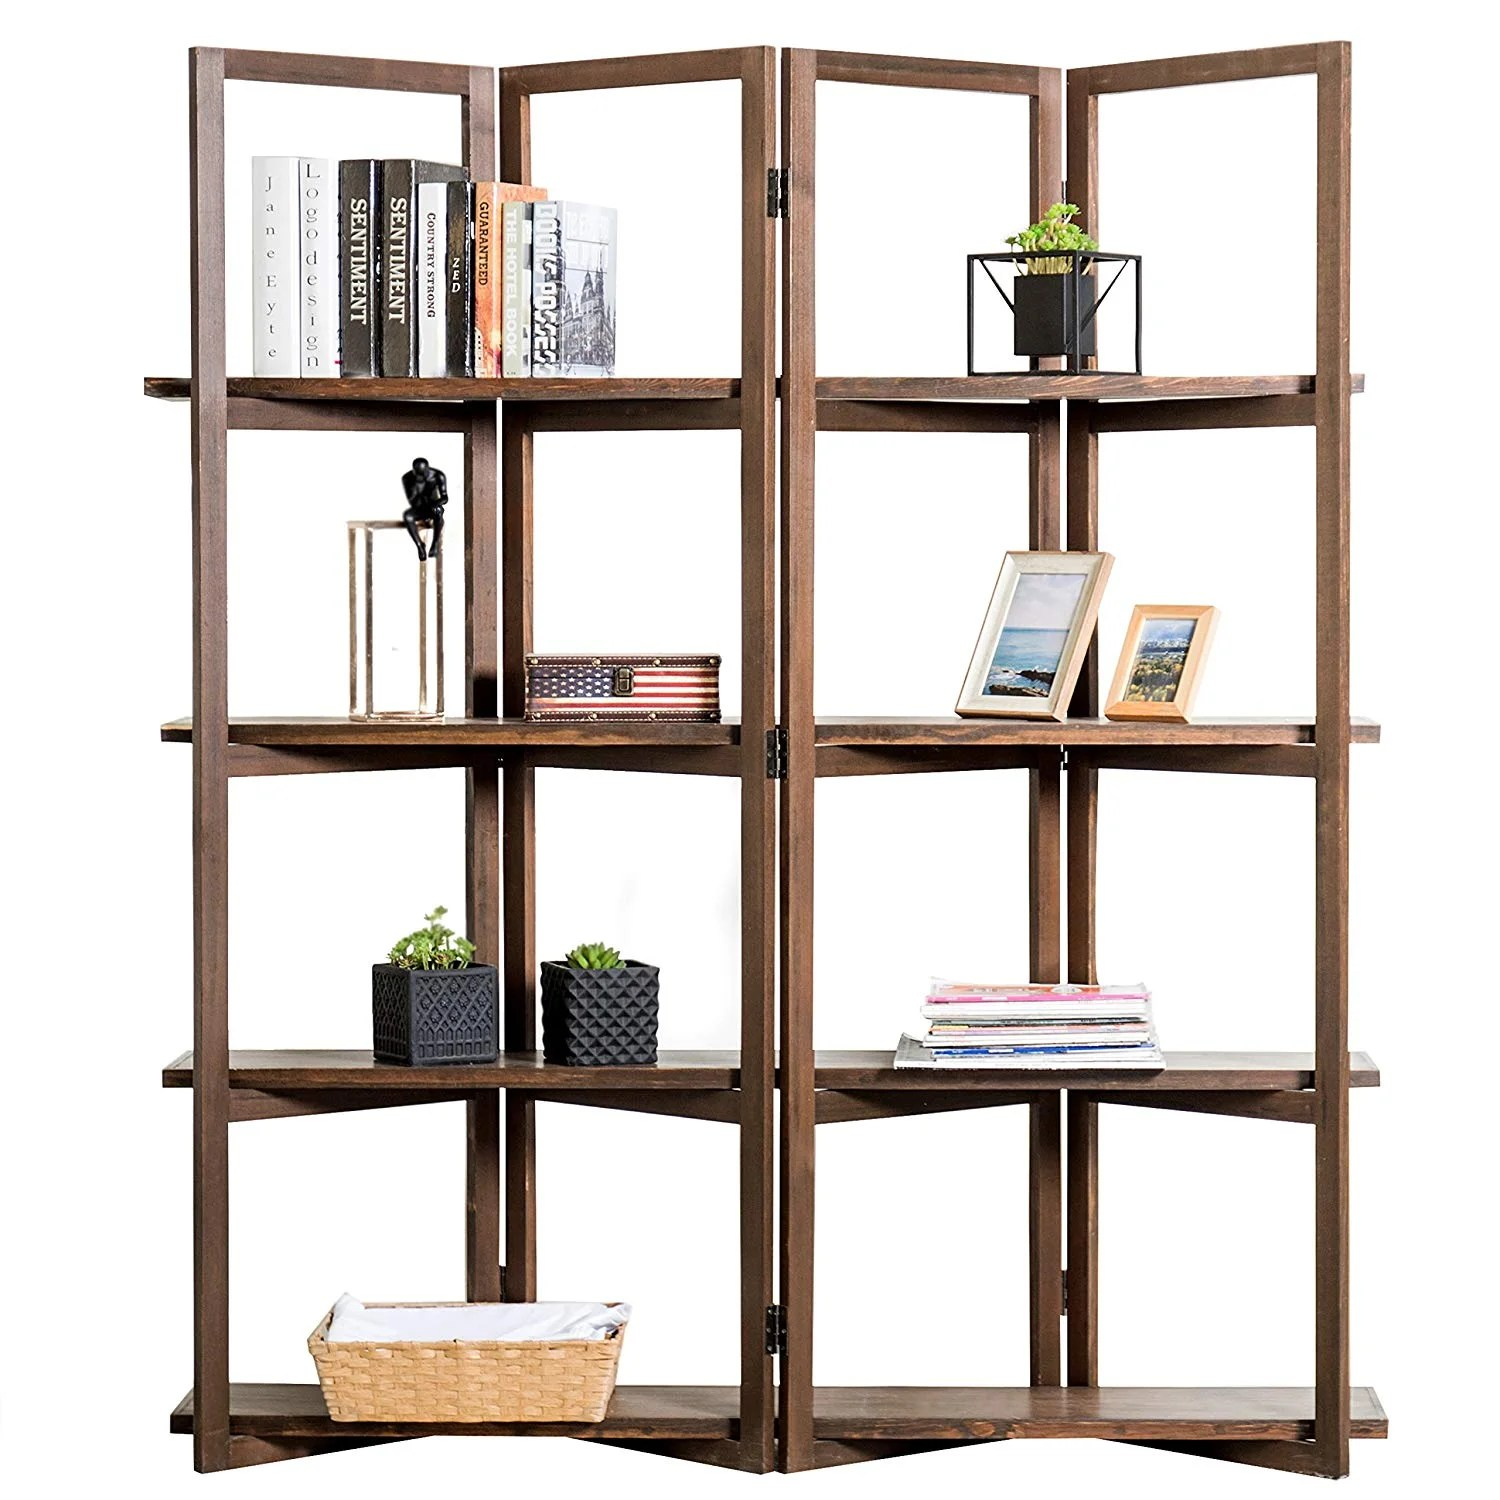 Mygift Open Bookcase Room Divider